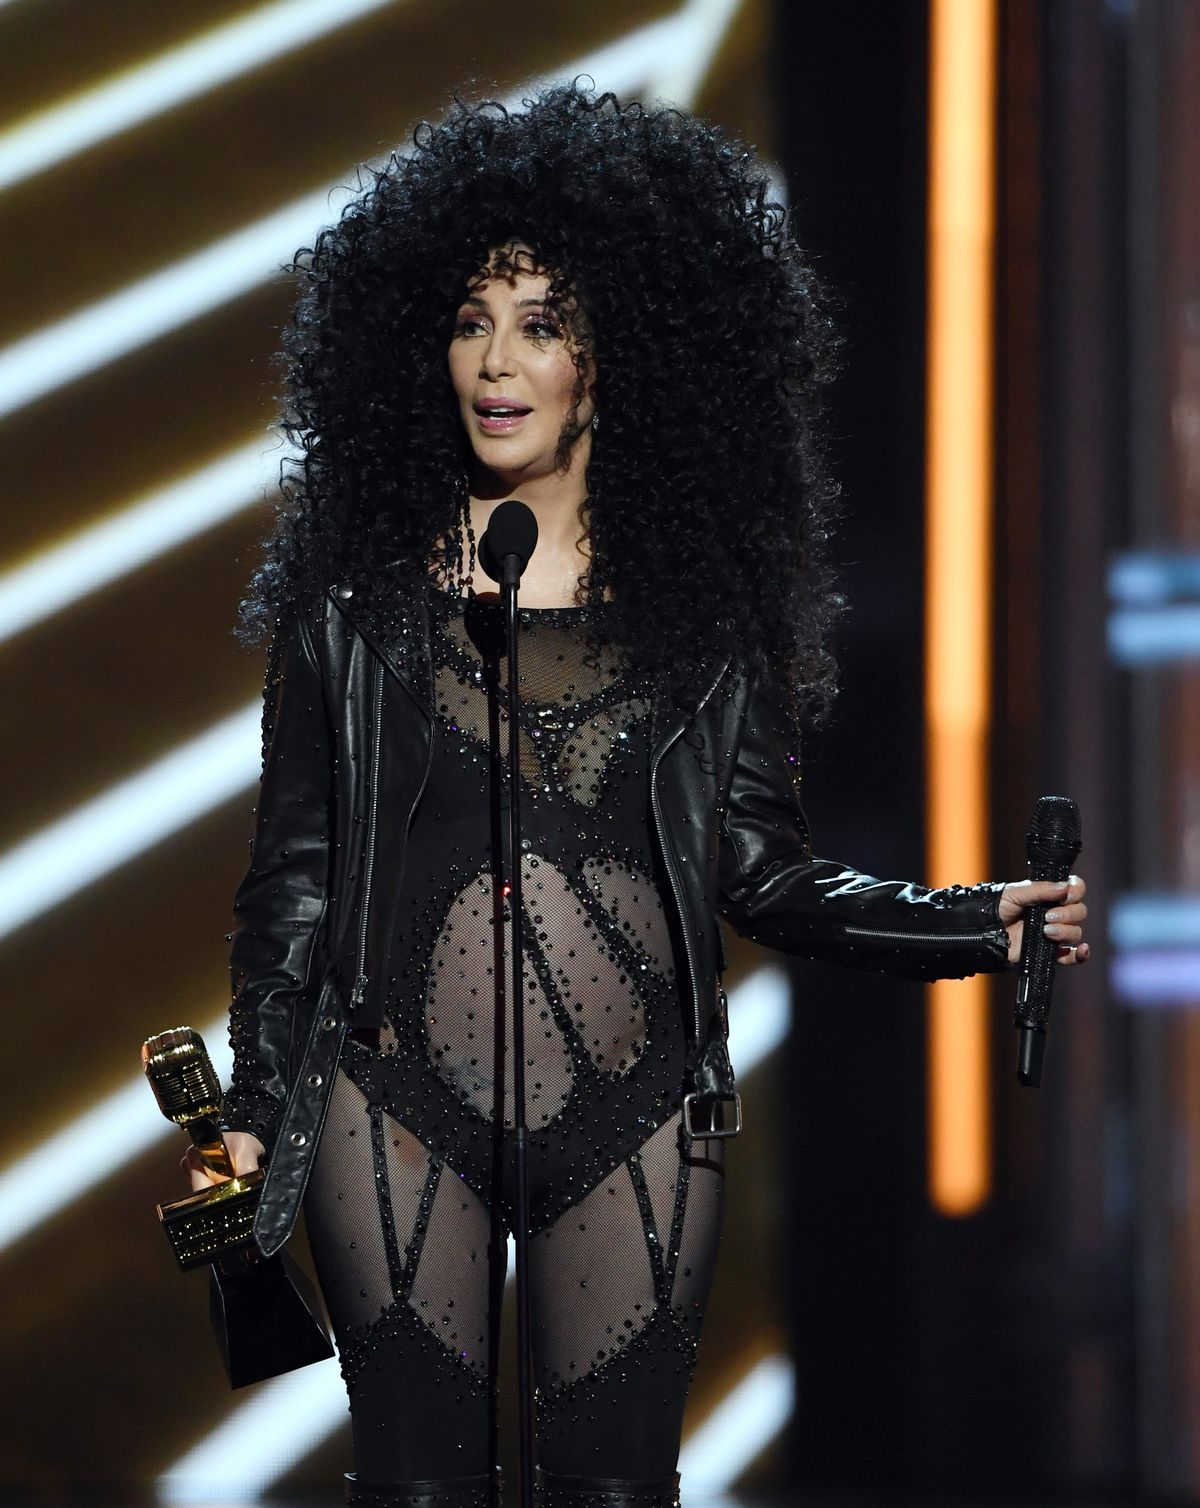 Cher accepts the Billboard Icon Award during the 2017 Billboard Music Awards.   Ethan Miller/Getty Images